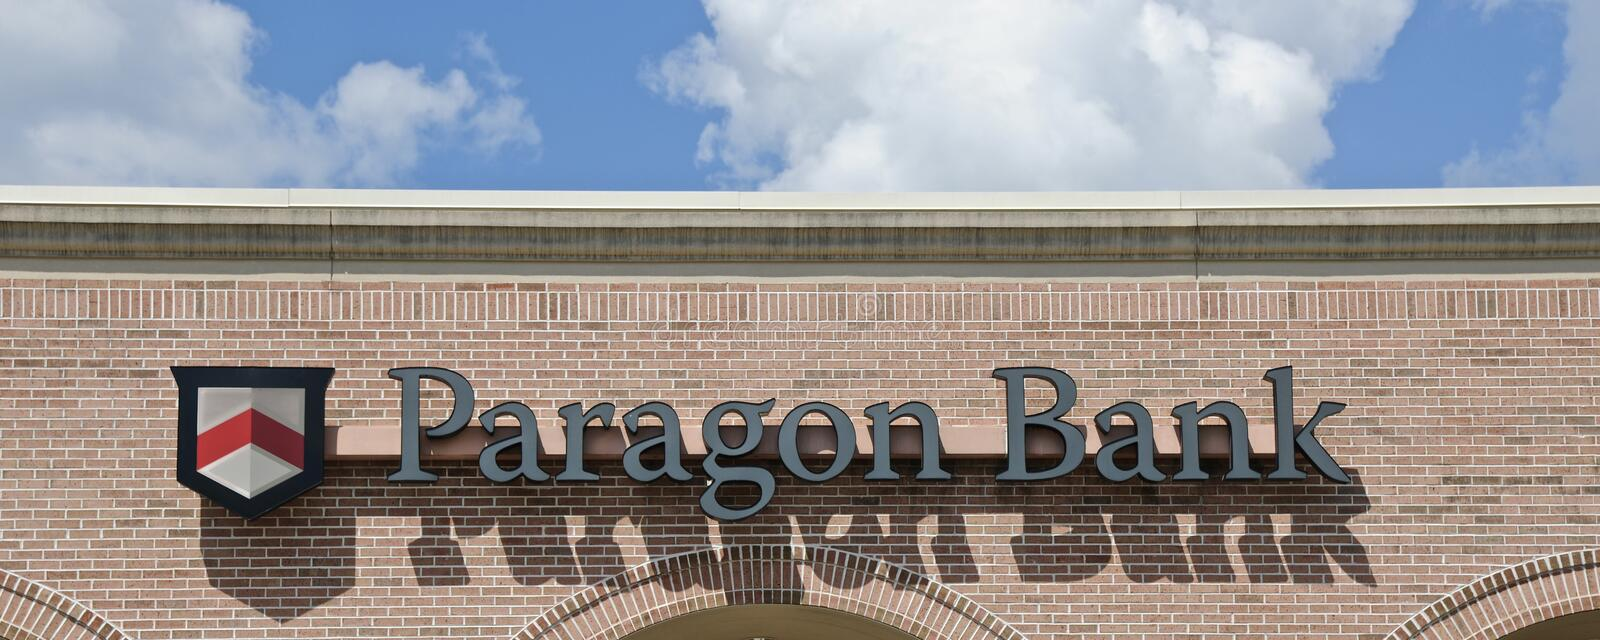 Paragon Bank Building stock photography